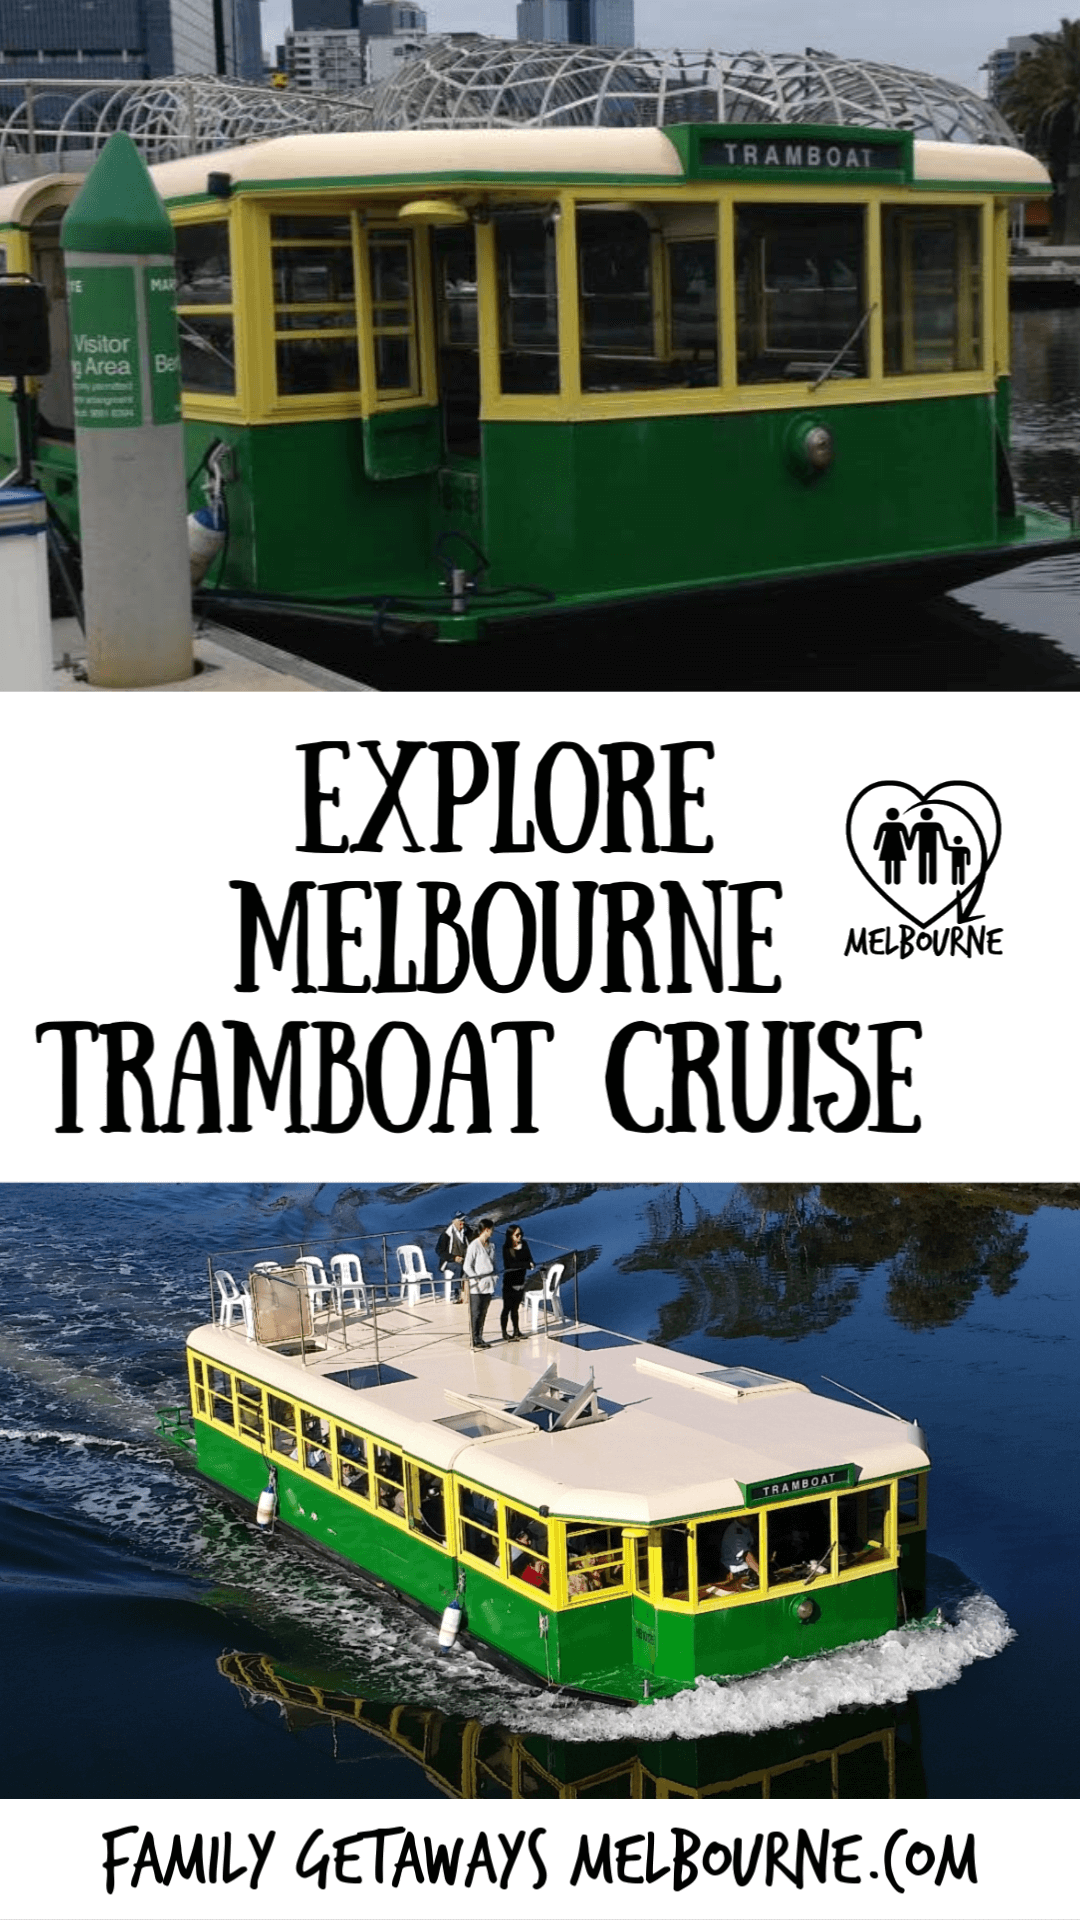 image to pin to Pinterest for the tramboat river cruise in Melbourne